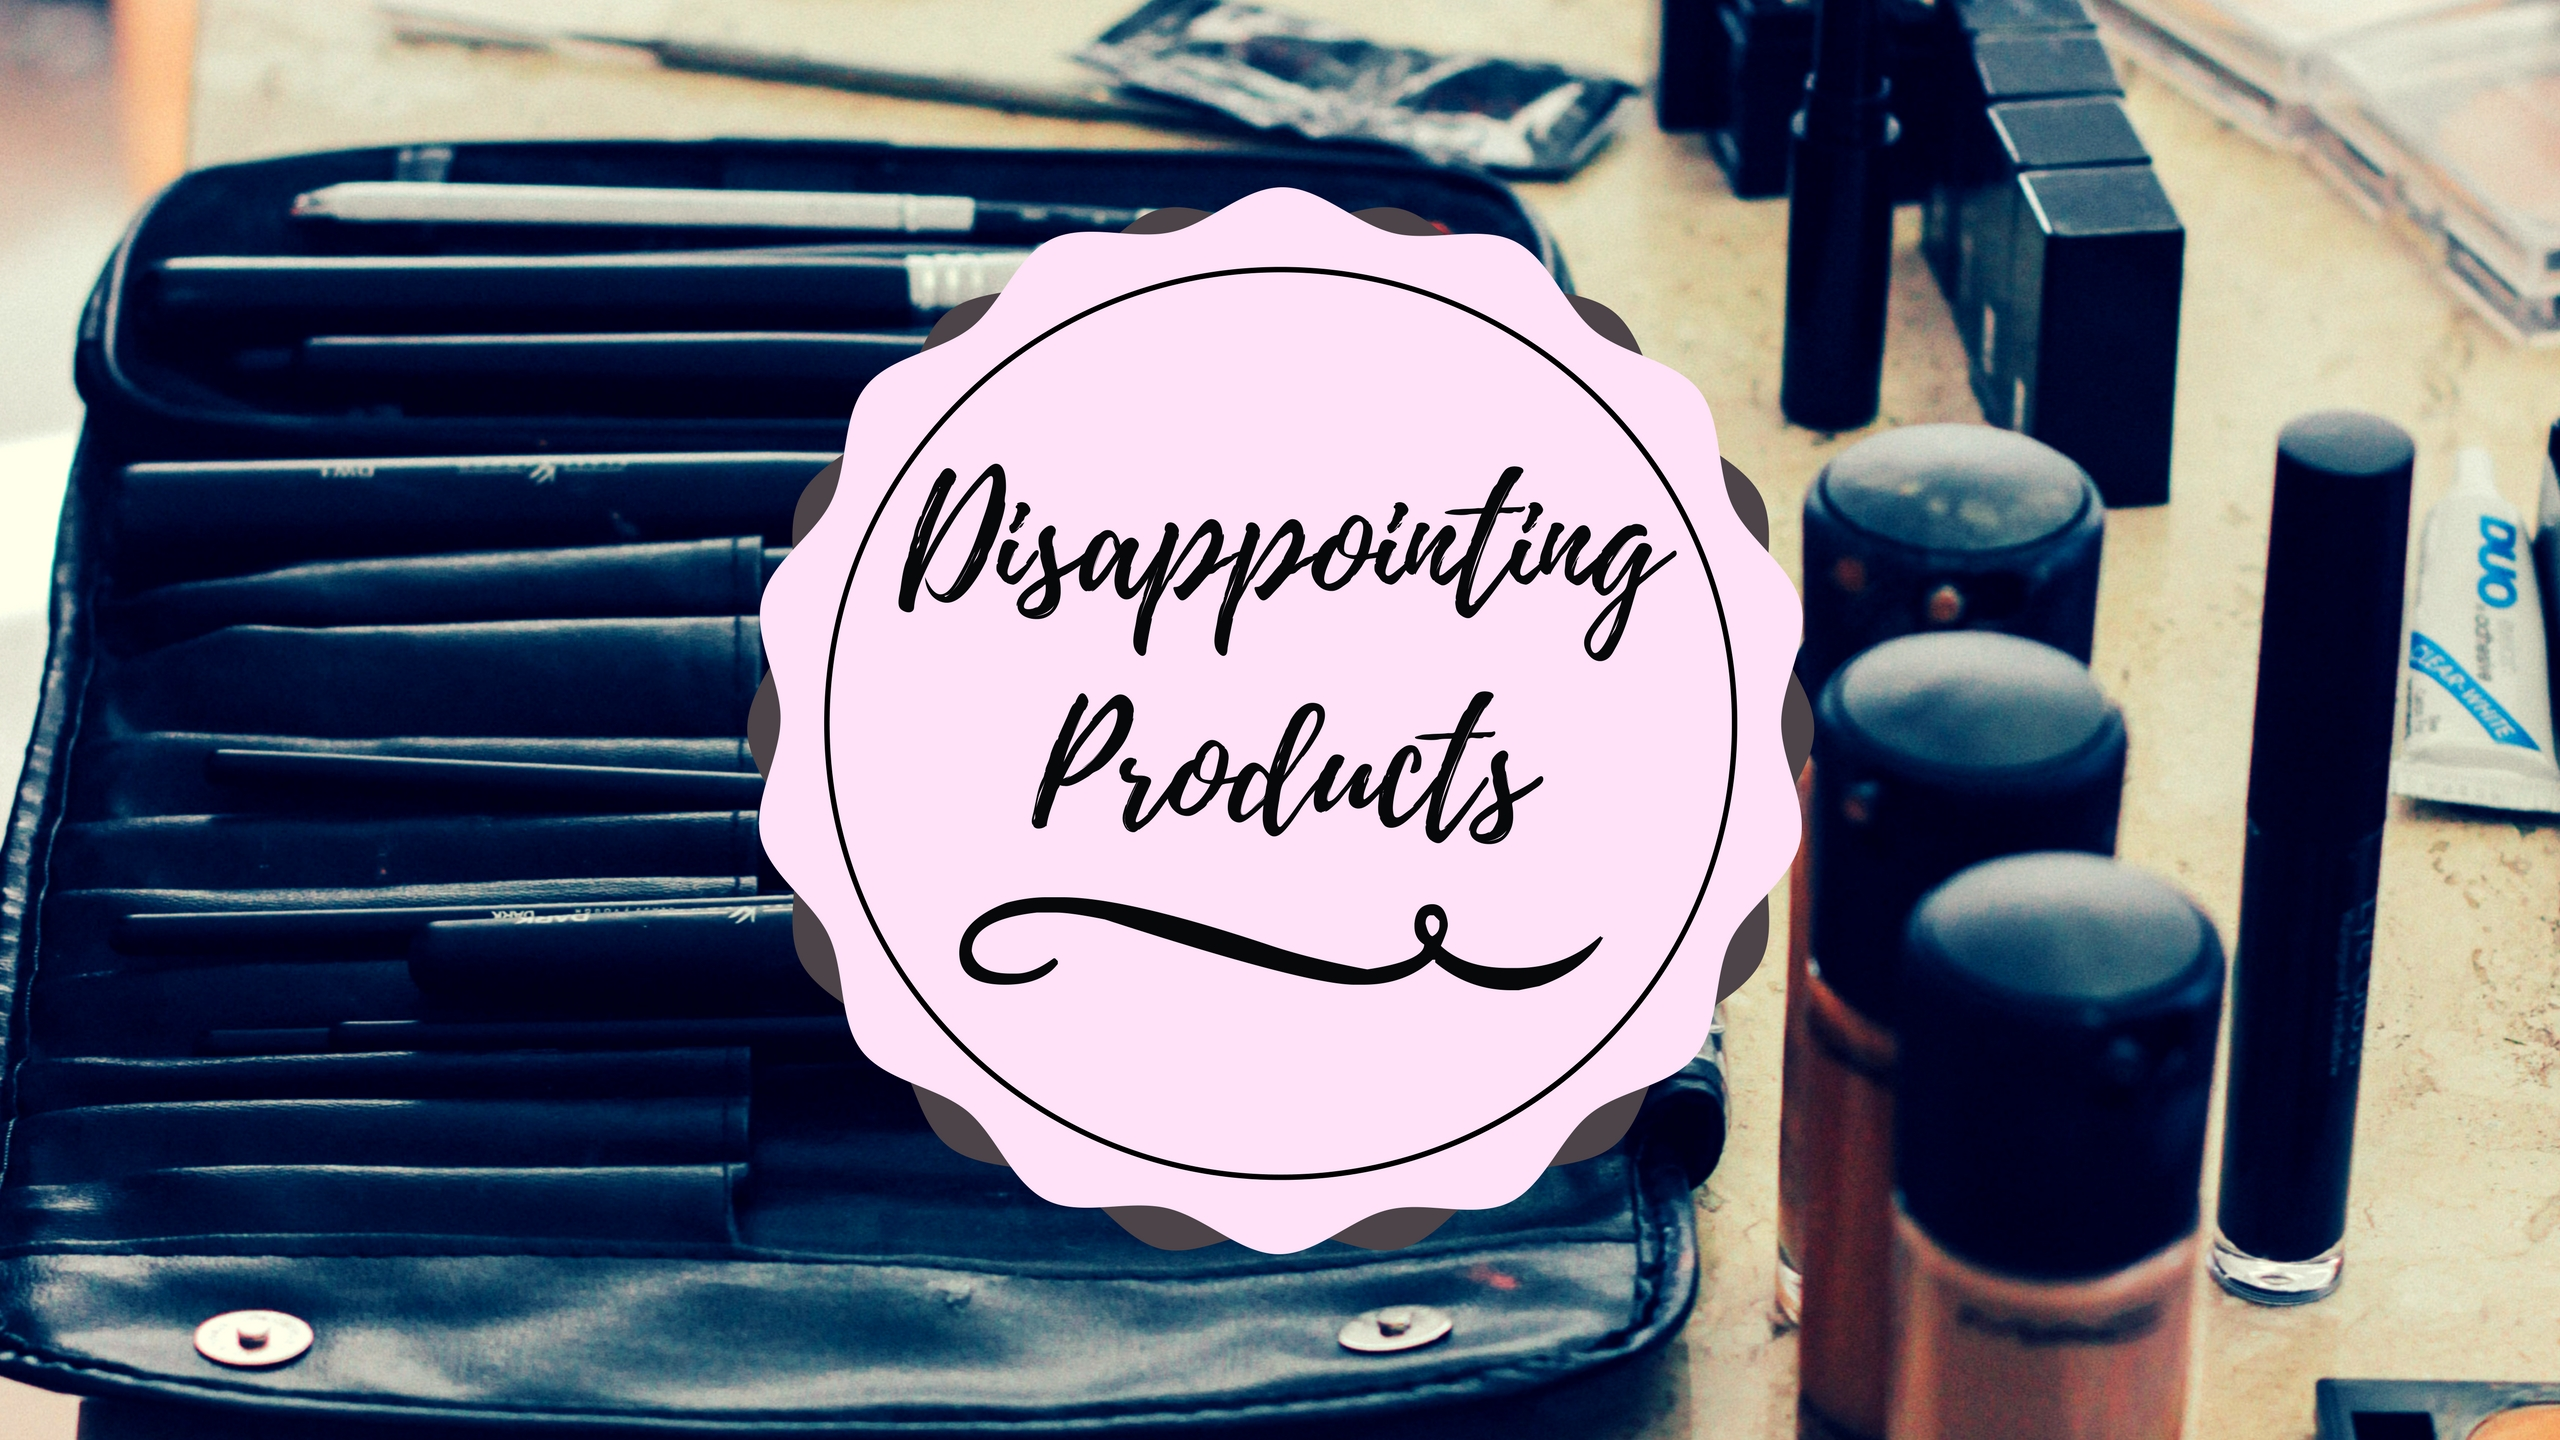 DISAPPOINTING PRODUCTS